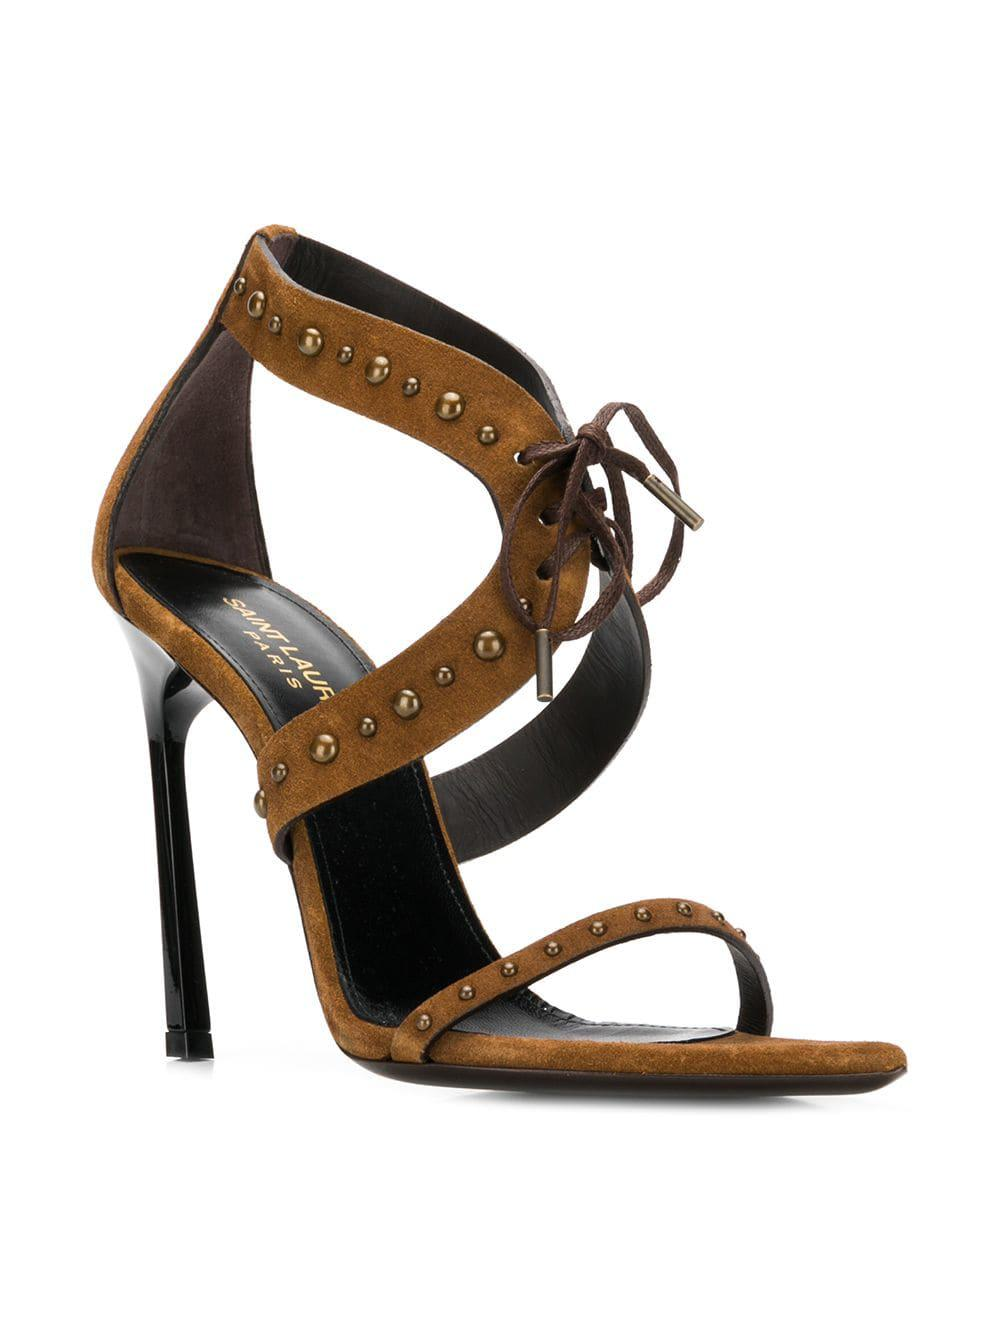 d5deb1e2a80 Lyst - Saint Laurent Studded Sandals in Brown